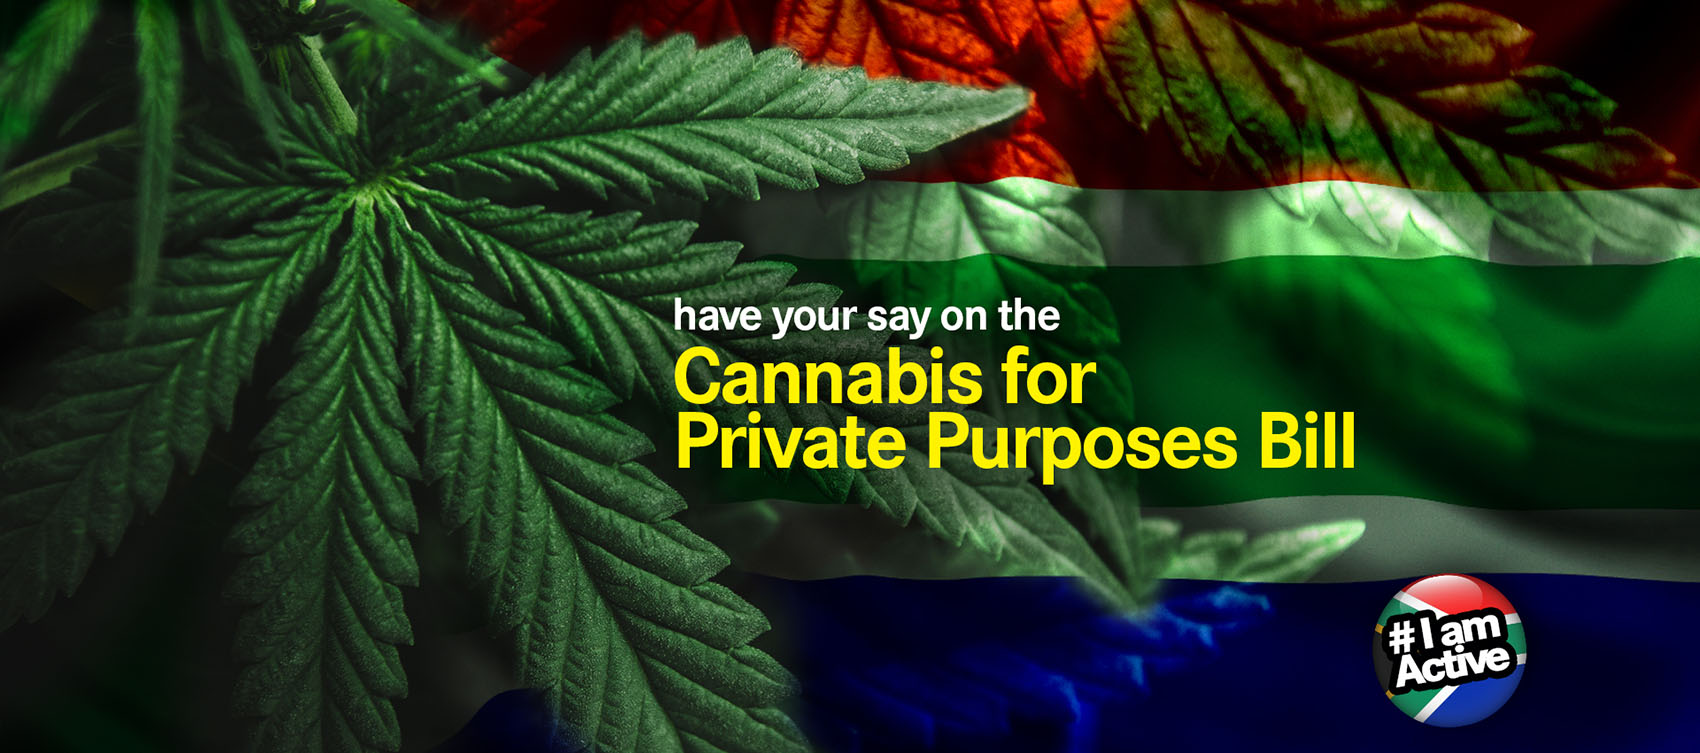 have your say on Cannabis for Private Purposes Bill DearSA Cannabis for private purposes